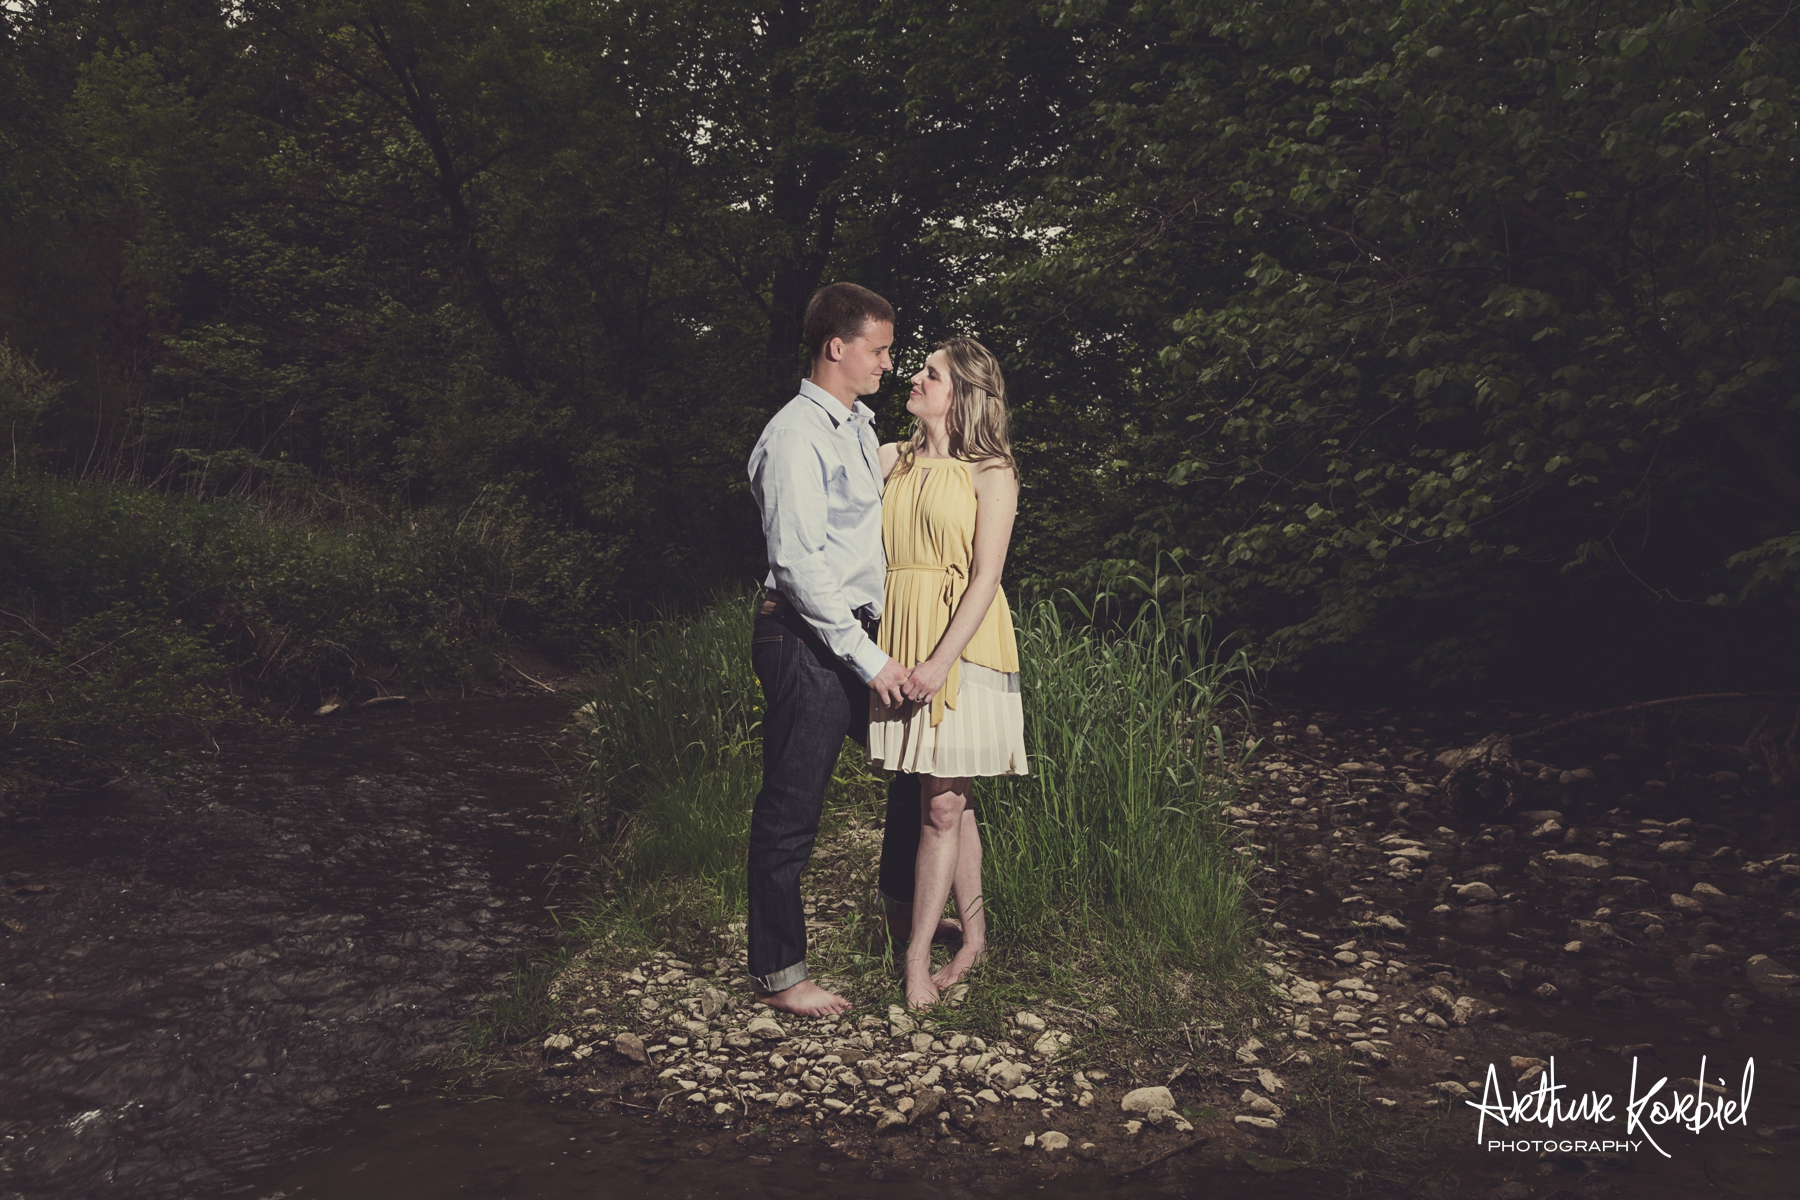 An example of formal clothing with a hint of casual from an engagement session.